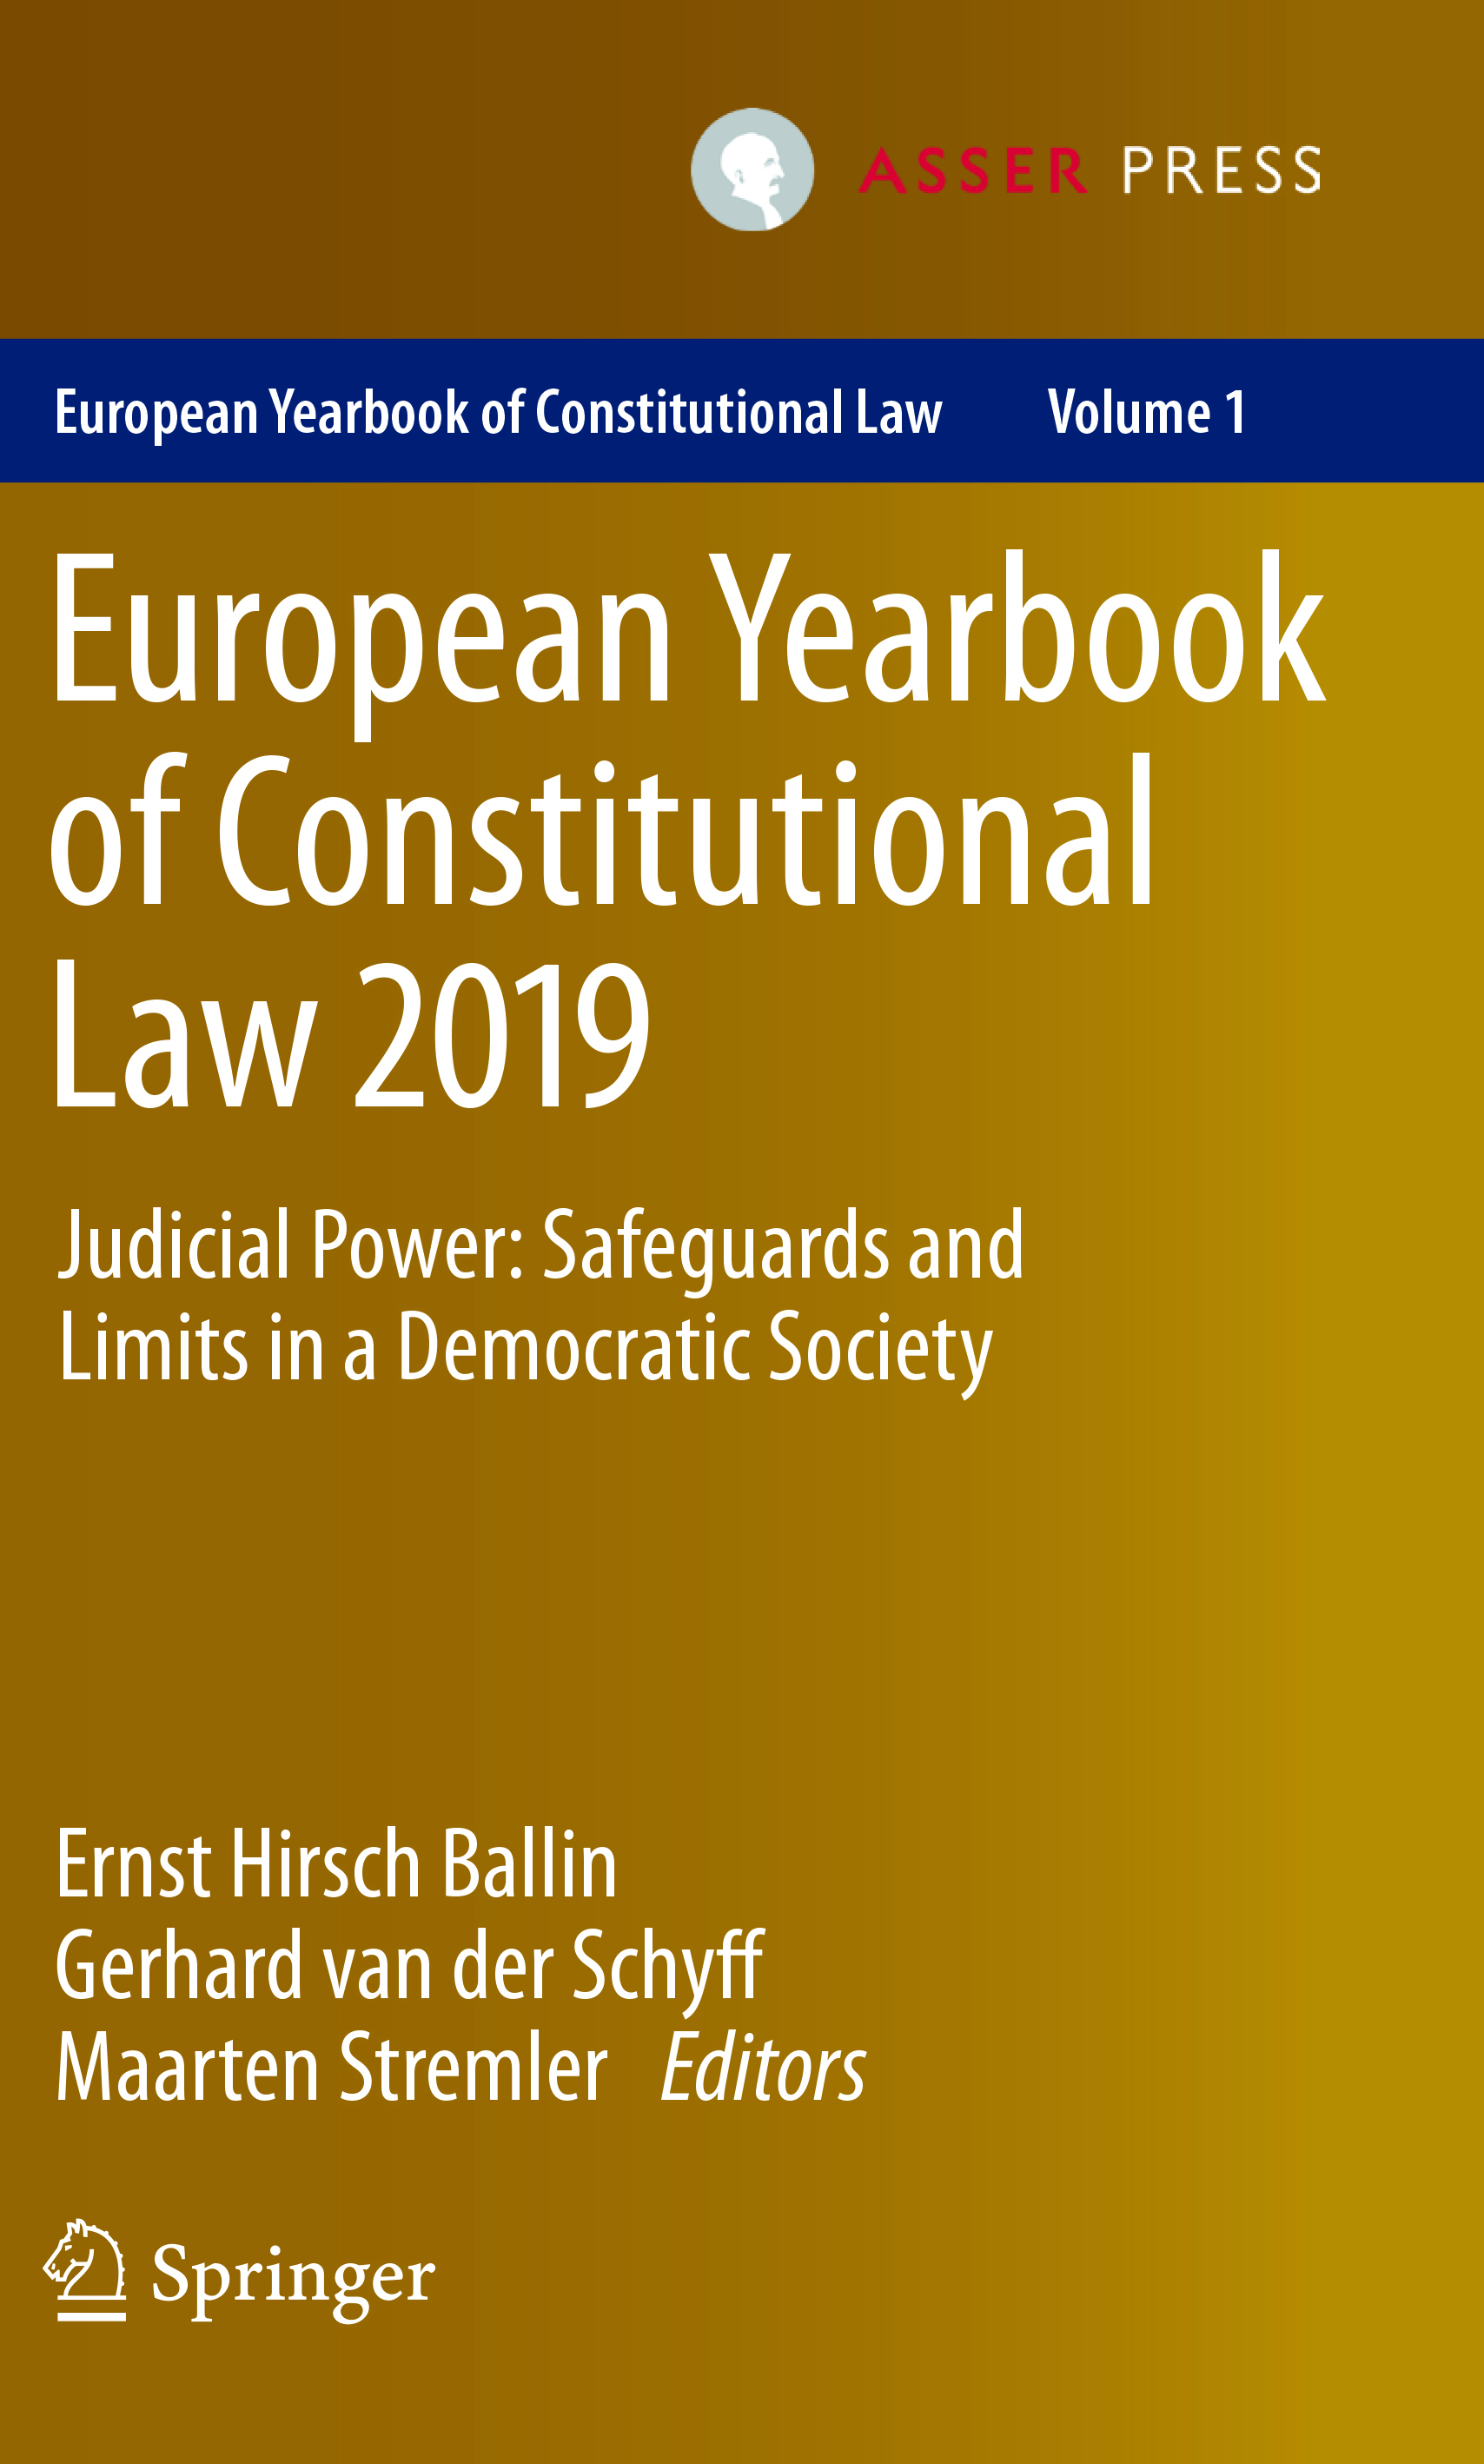 European Yearbook of Constitutional Law 2019 - Judicial Power: Safeguards and Limits in a Democratic Society